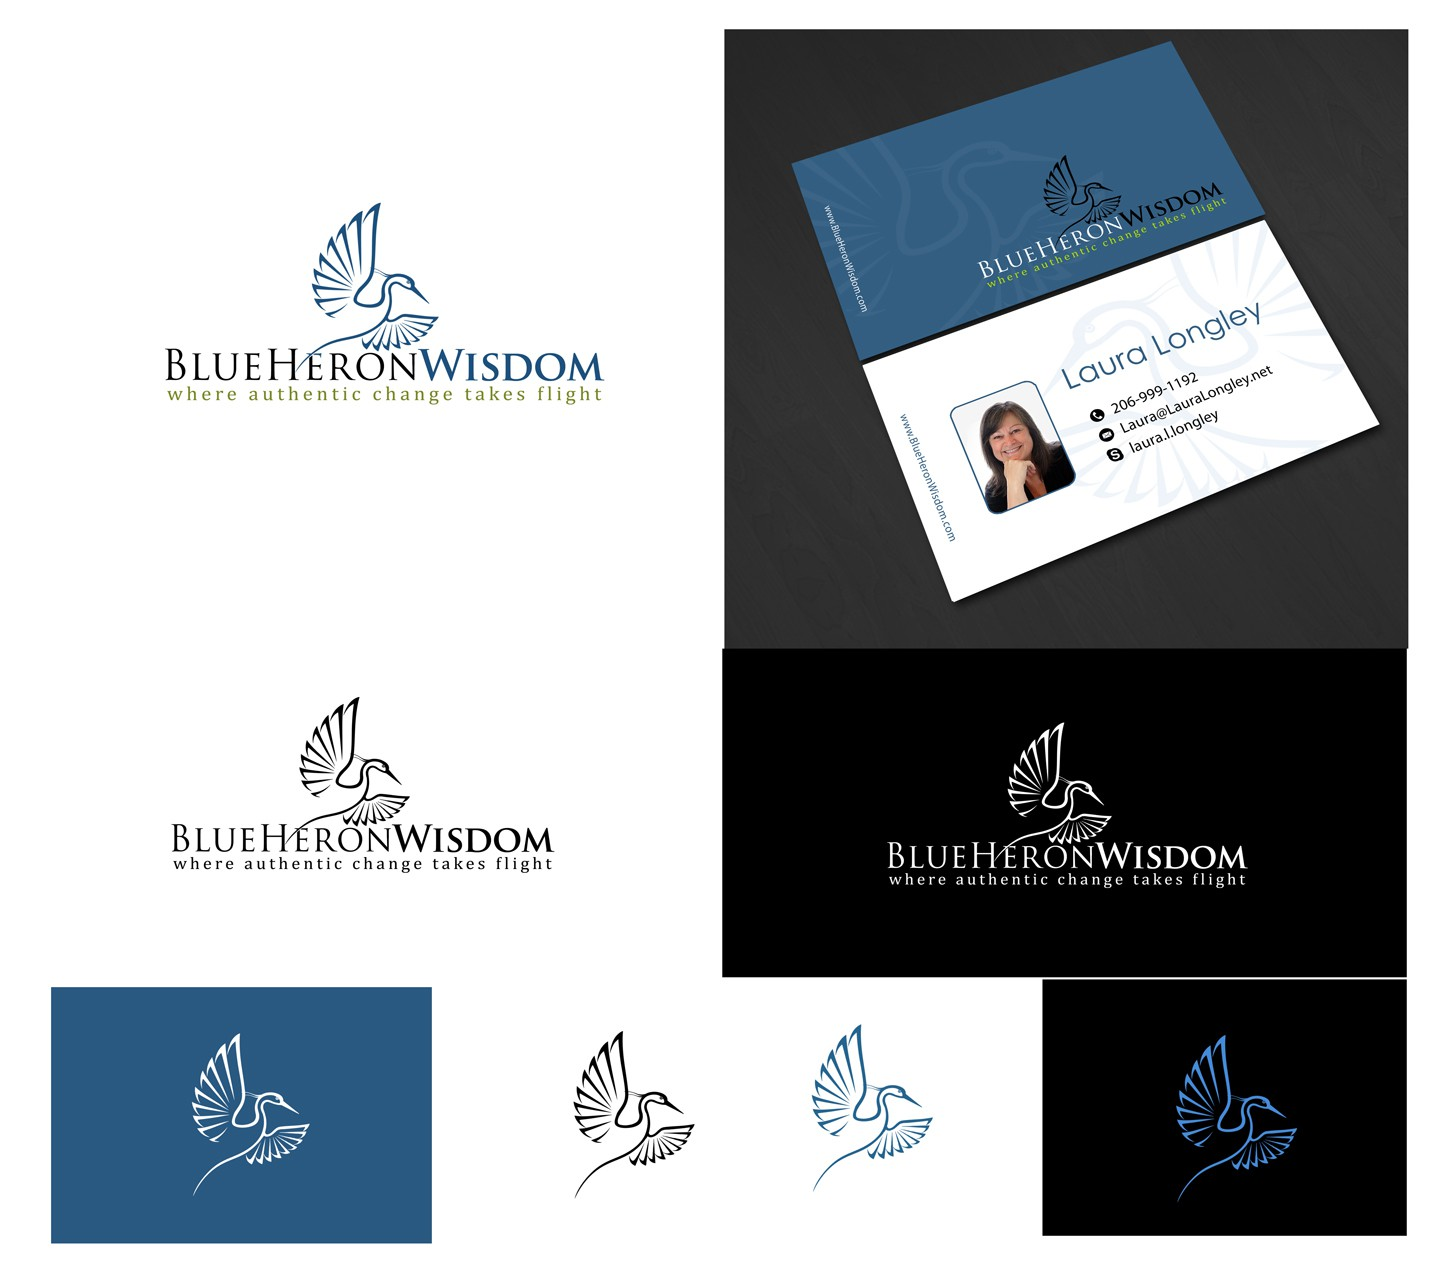 New logo and business card wanted for Blue Heron Wisdom